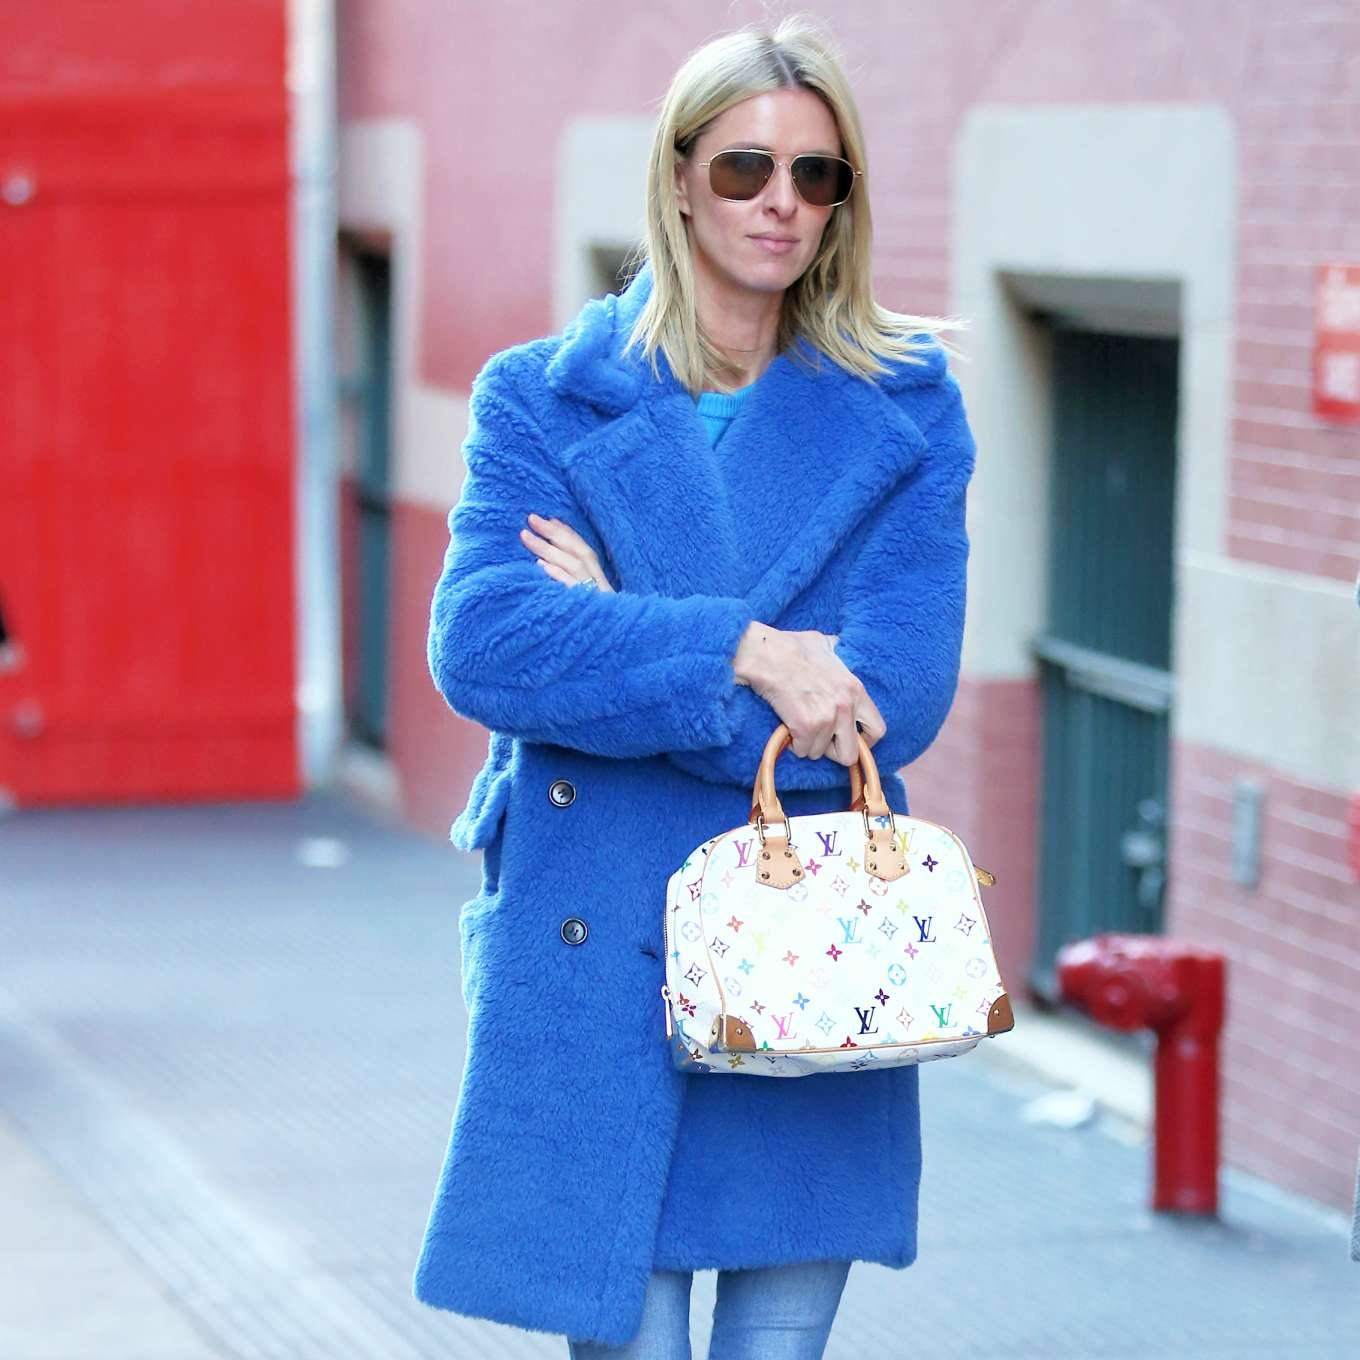 Nicky Hilton 2020 : Nicky Hilton in Blue Coat – Out and about in New York City-02